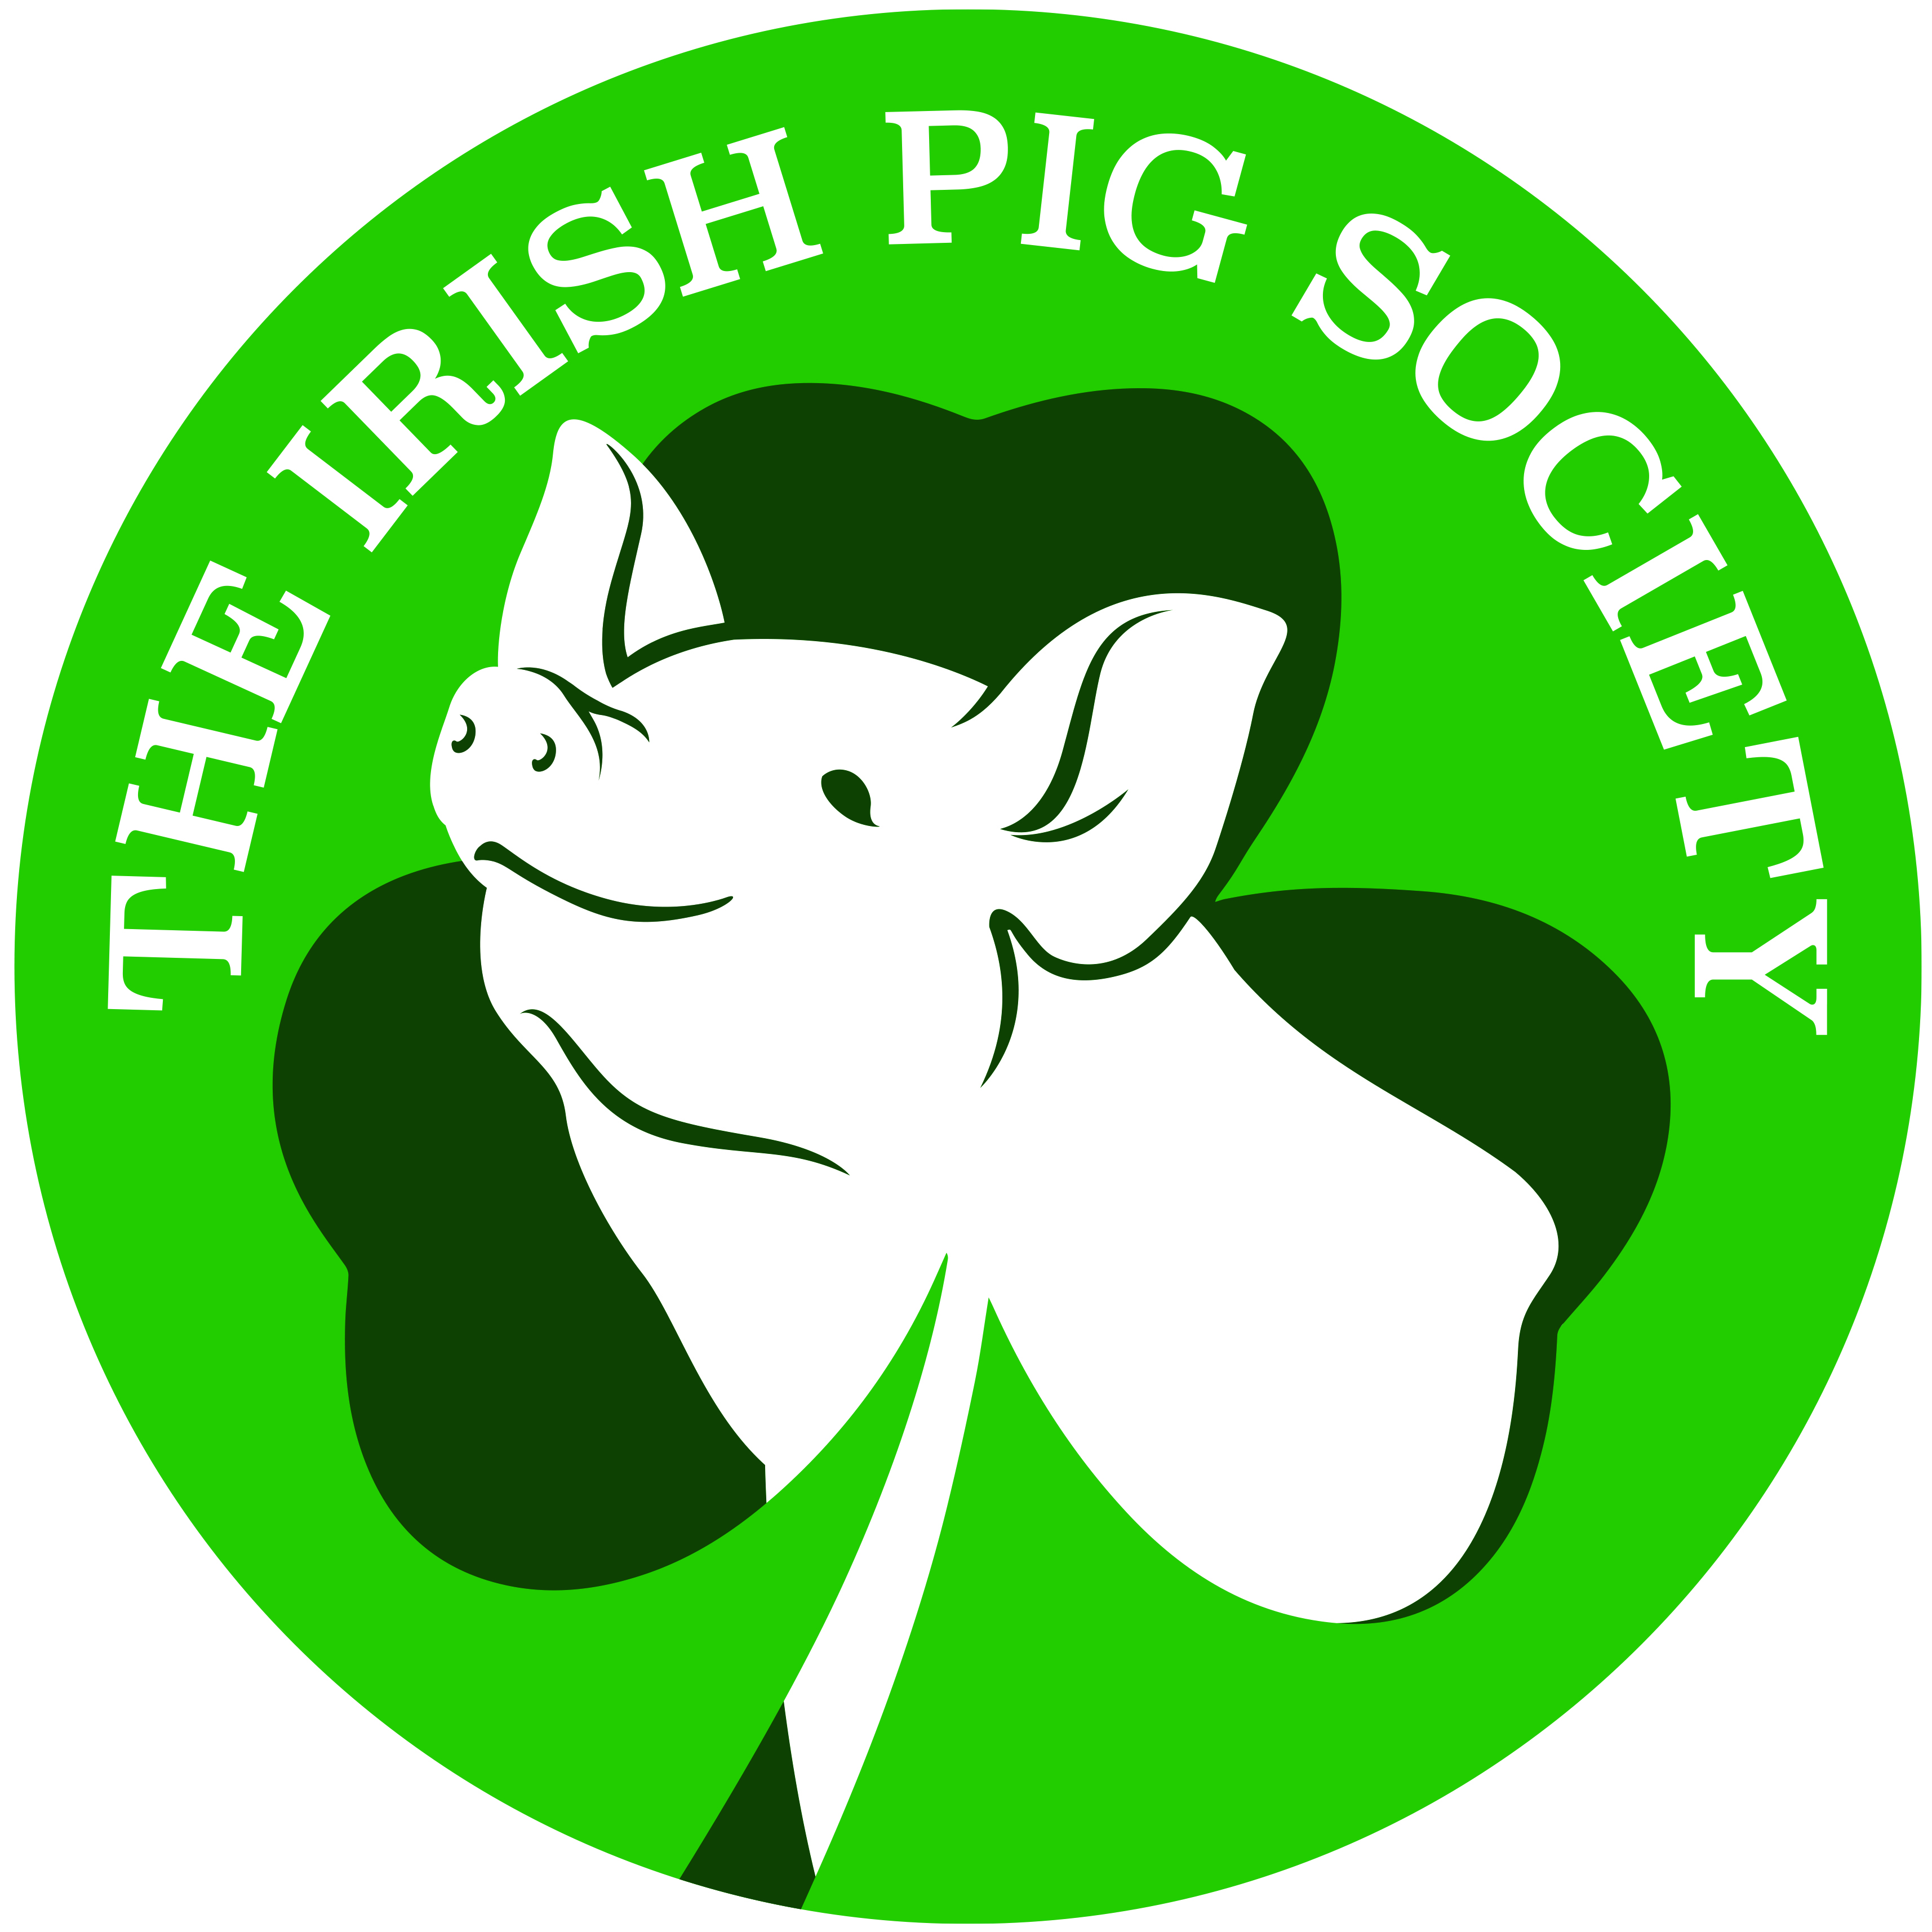 Hosted By The Irish Pig Society